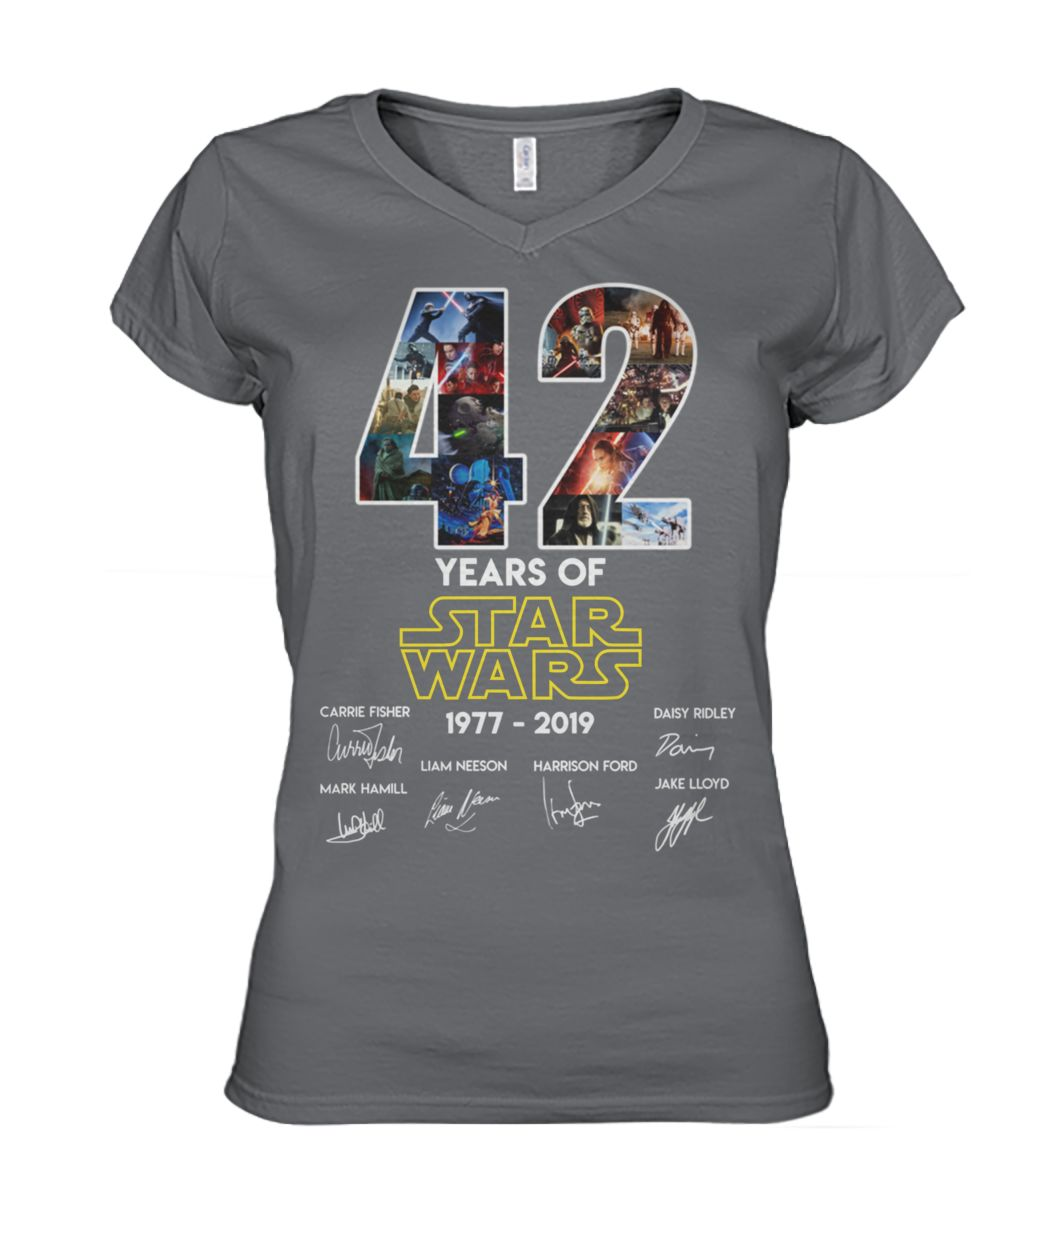 42 years of star wars 1977-2019 signatures women's v-neck